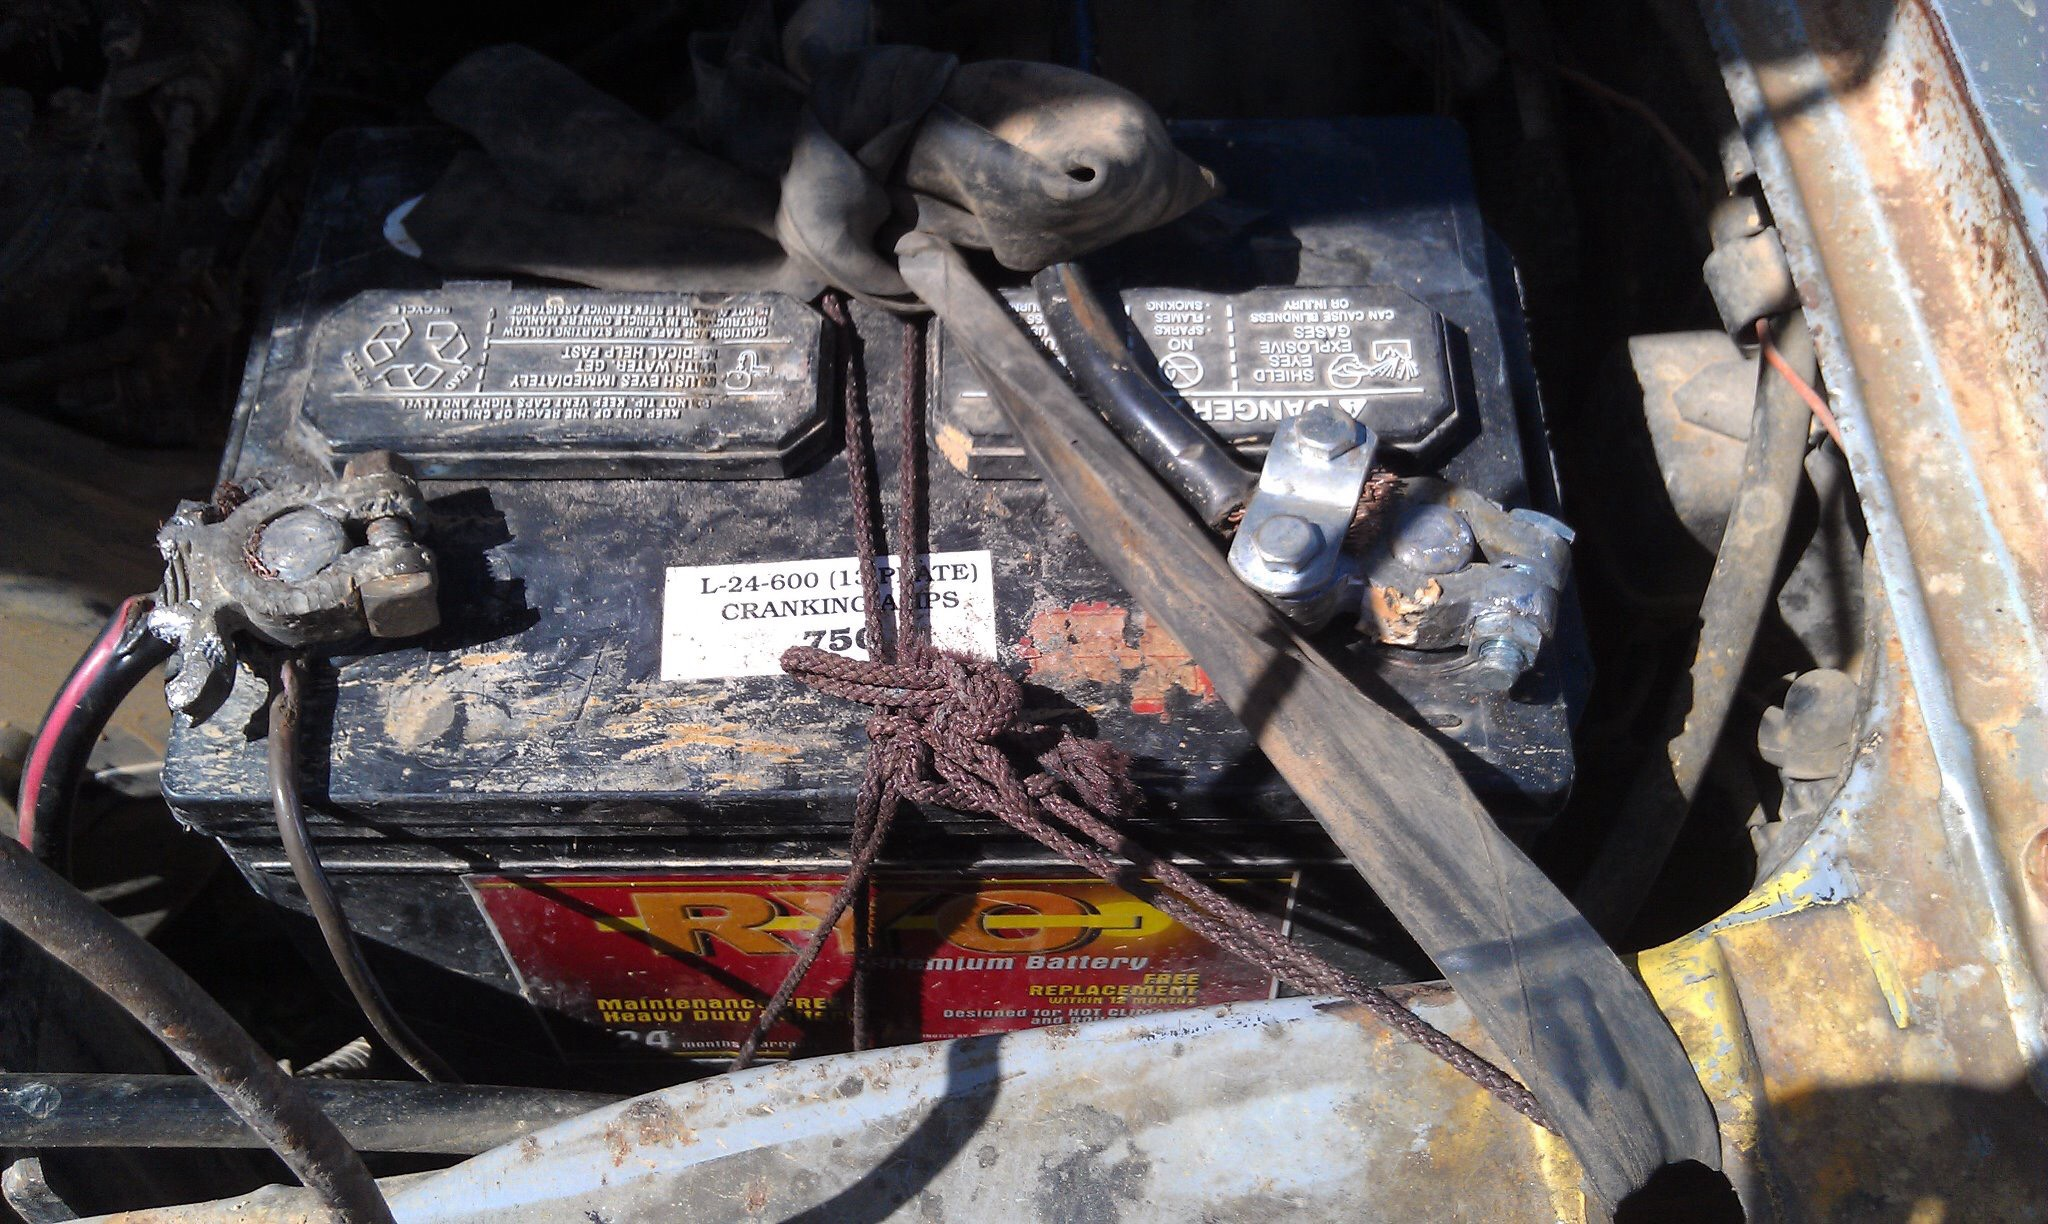 this is the car battery from the story. I am not making this up. note the shoelace [brown] and bike tire [black rubber] used to hold the battery in place